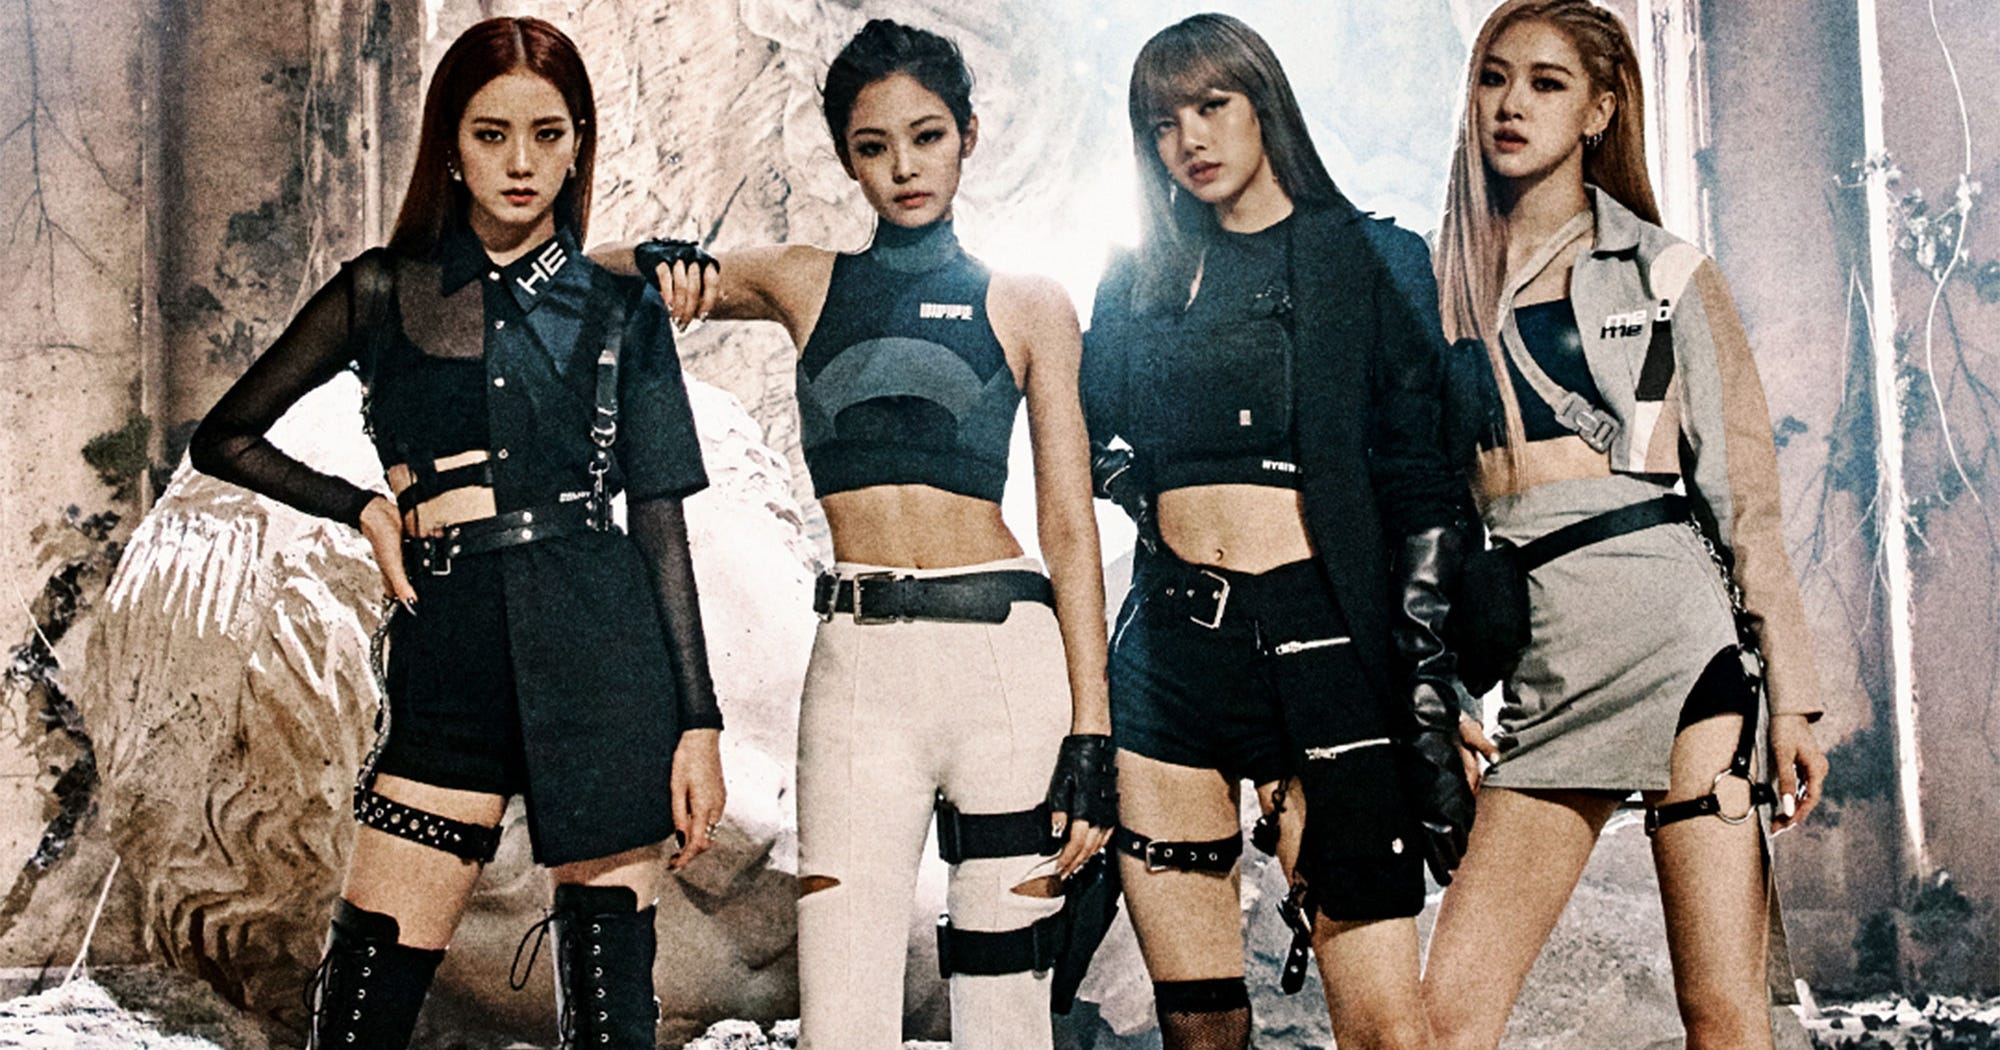 """BLACKPINK Almost Killed YouTube With Fierce """"Kill This Love"""" Video"""